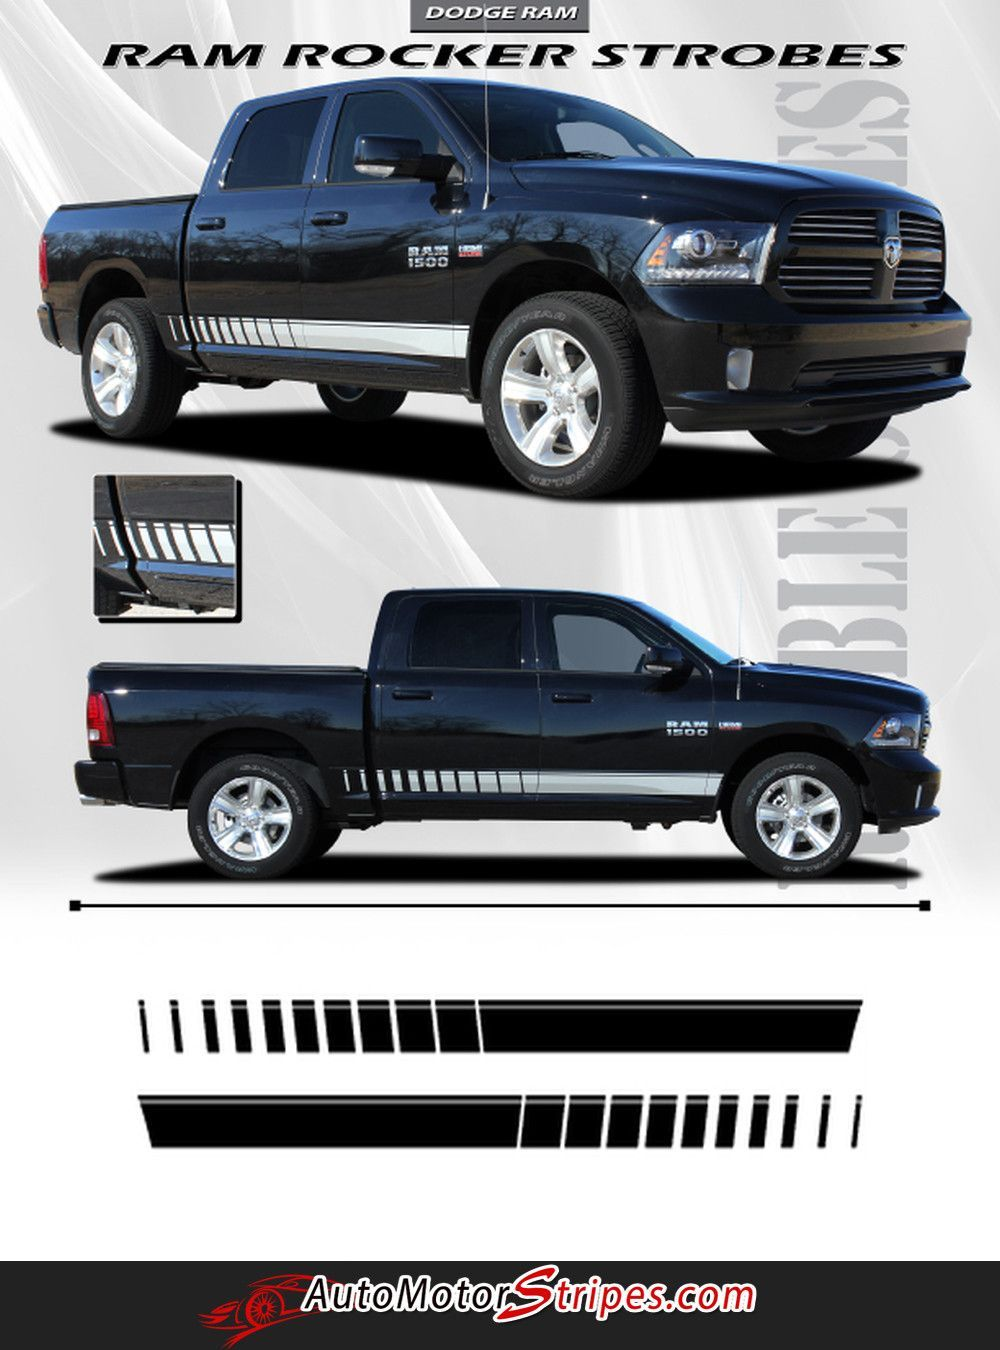 hight resolution of vehicle specific style dodge ram truck lower rocker panel strobe vinyl graphic stripe decals year fitment 2009 2010 2011 2012 2013 2014 2015 2016 contents